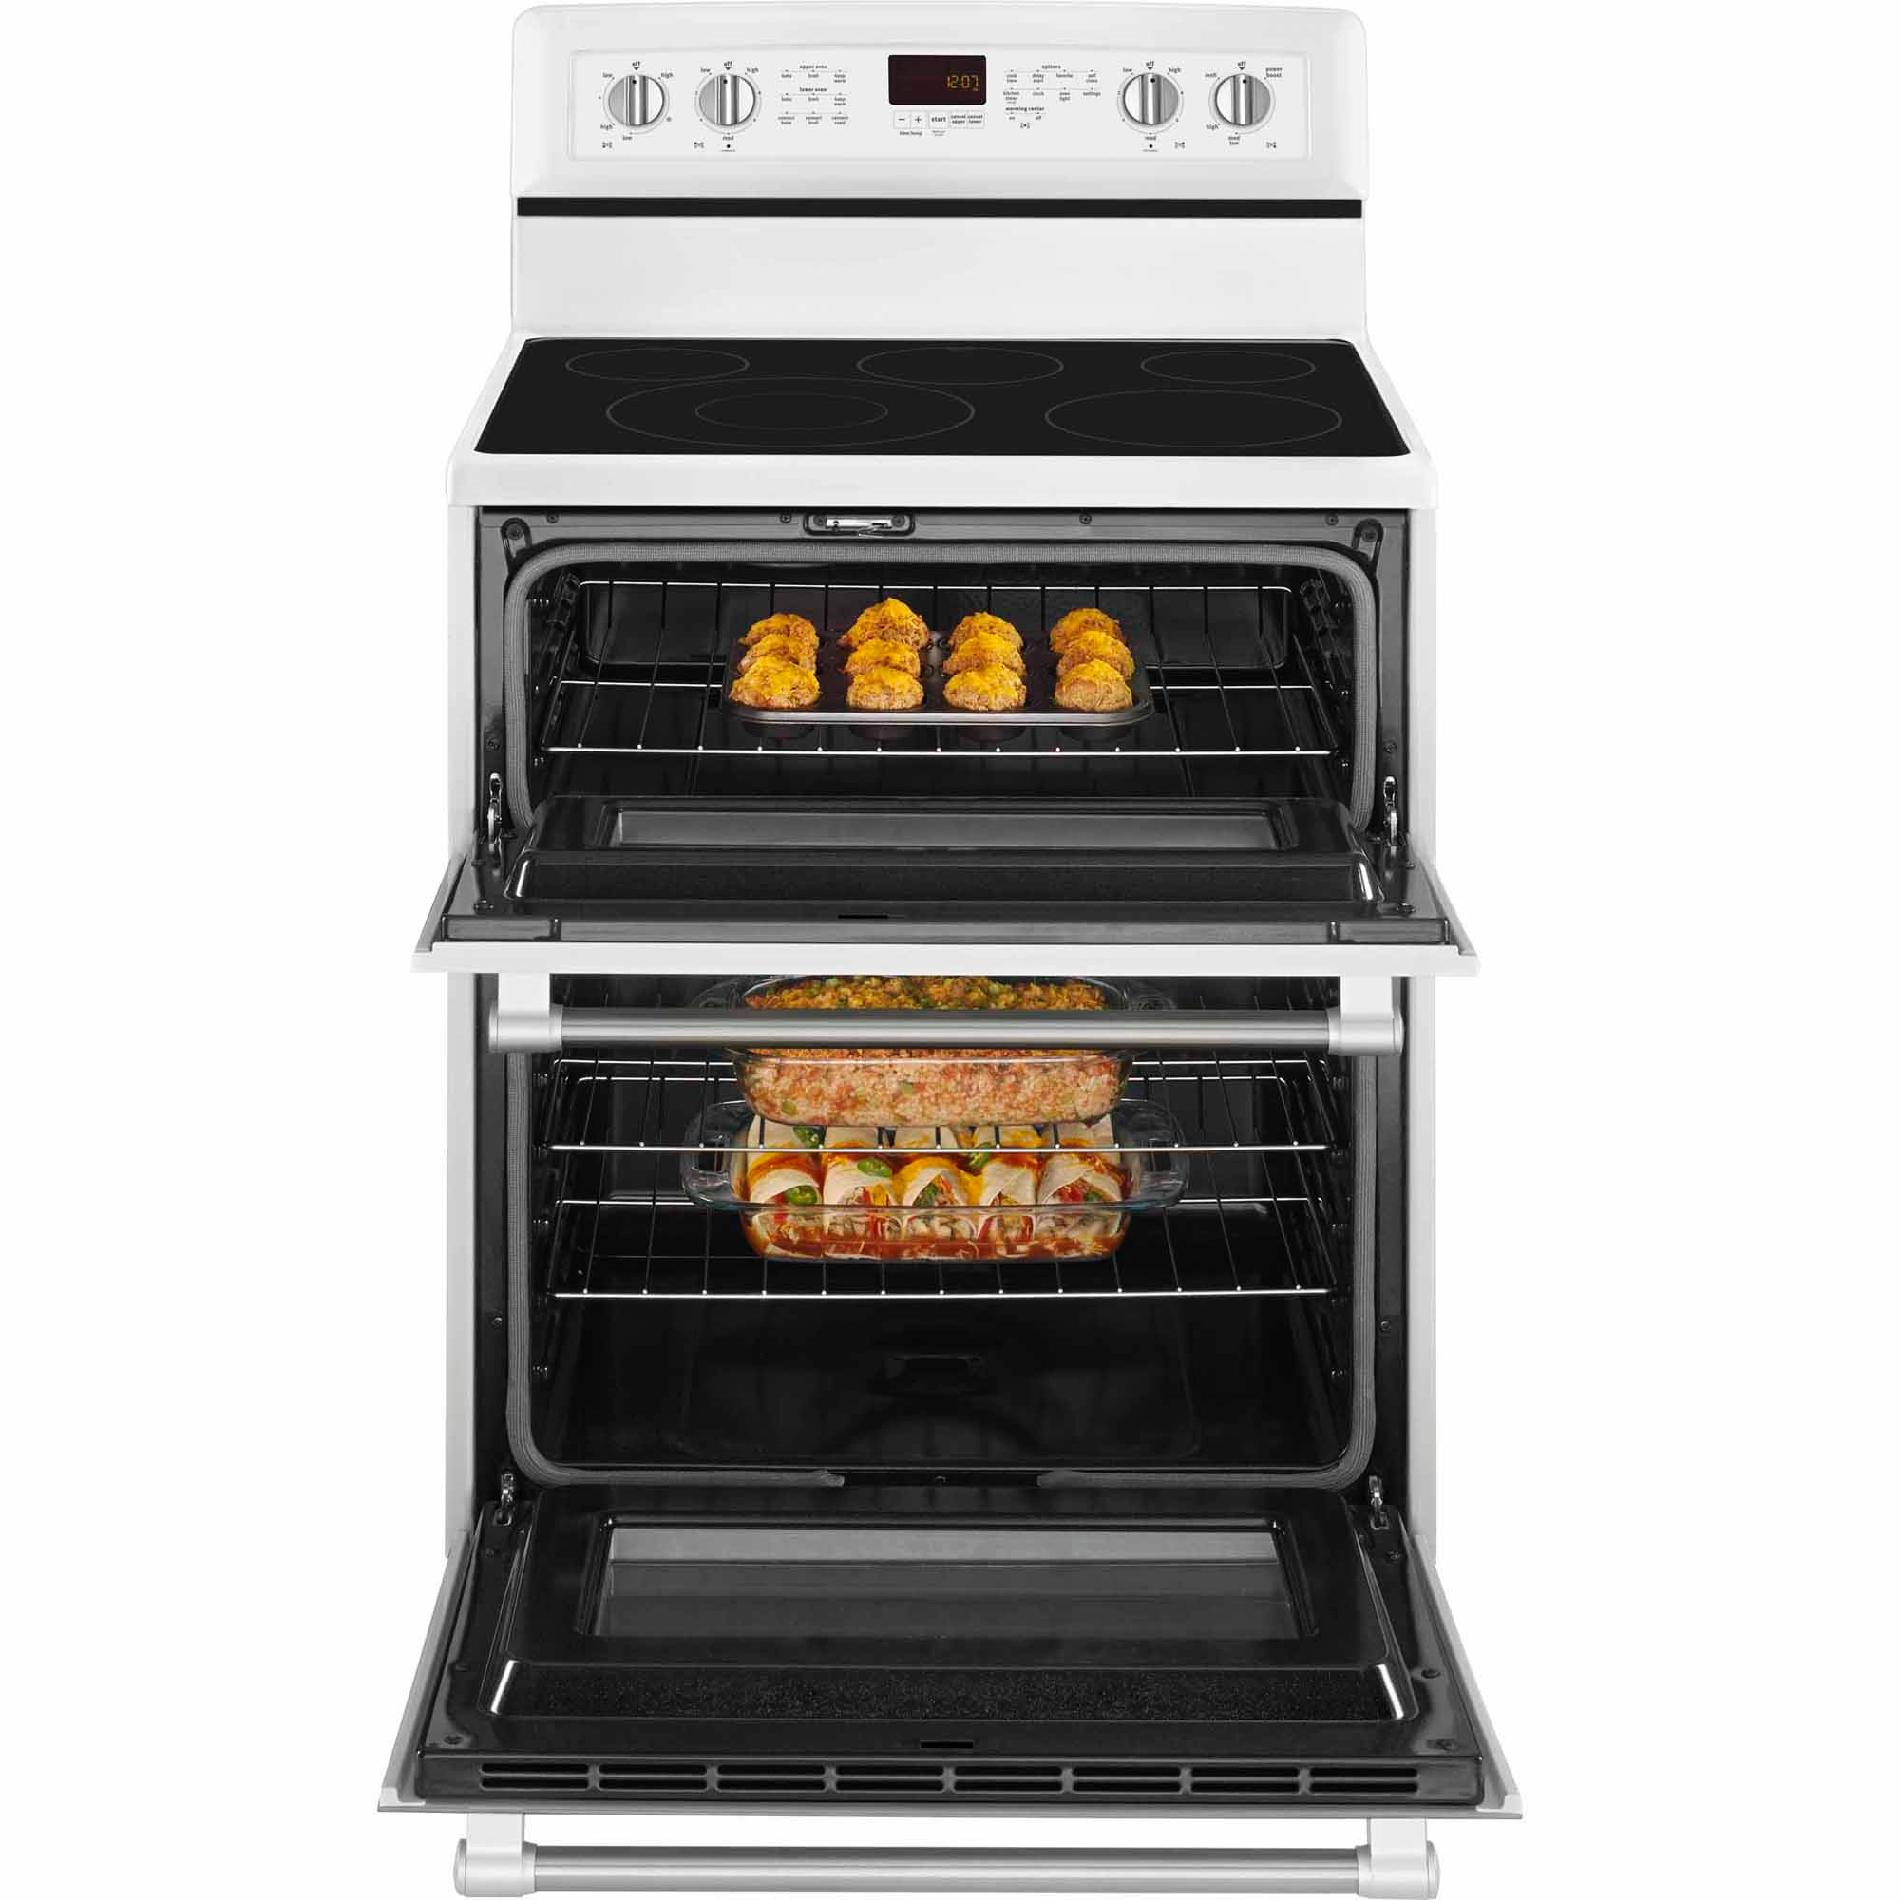 Maytag MGT8720DH 6.0 cu. ft. Double-Oven Gas Range - White w/ Stainless Handle